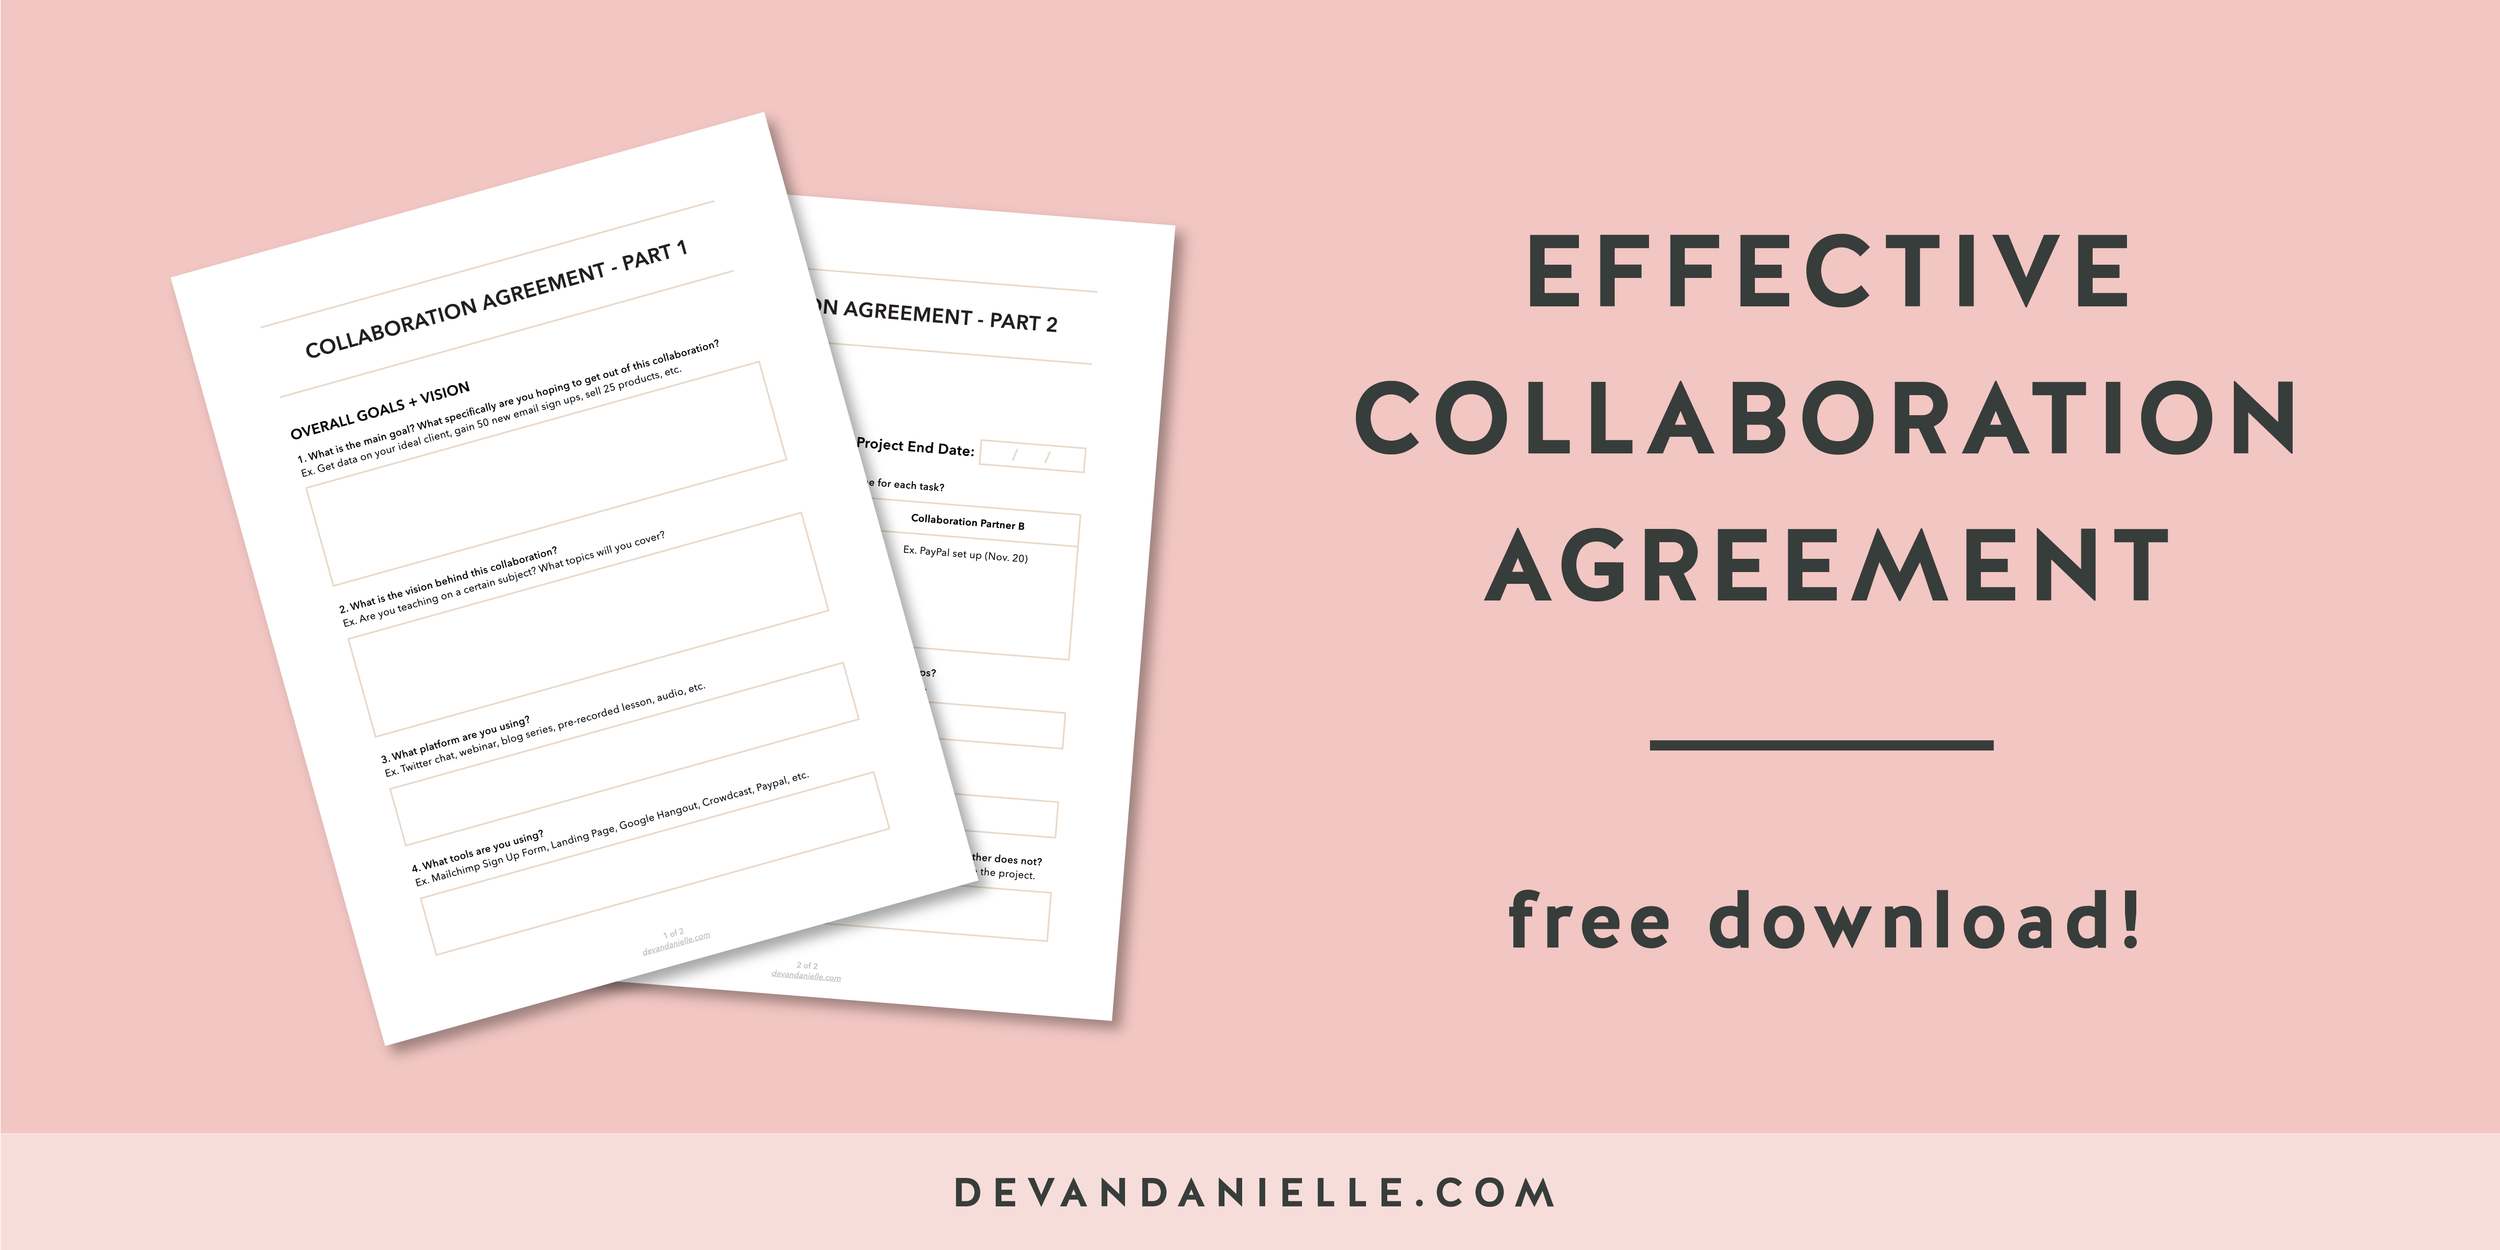 Effective Collaboration Agreement